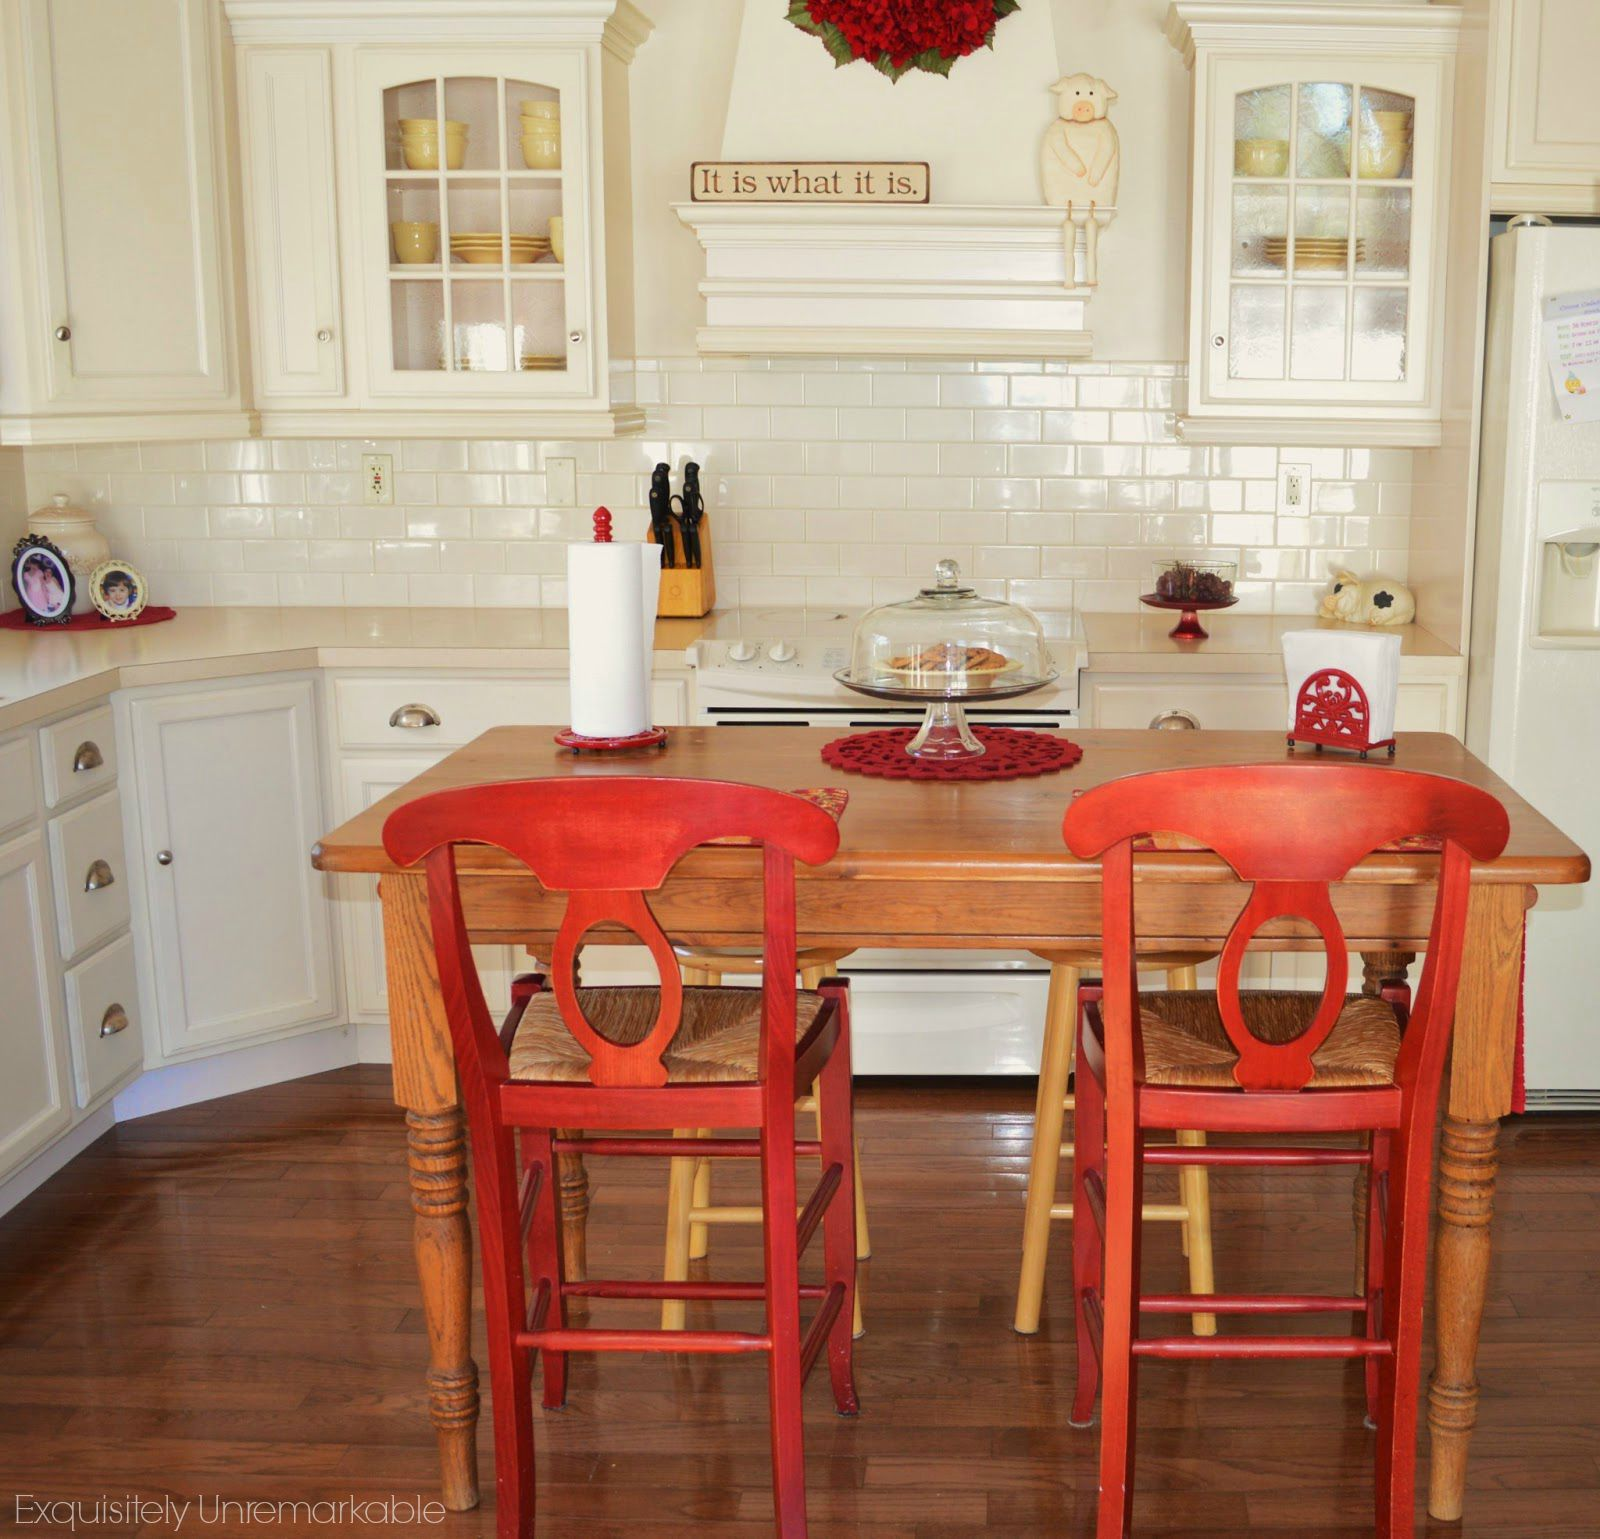 Decoration For Kitchen Table: Turn Your Kitchen Table Into A Farmhouse Island